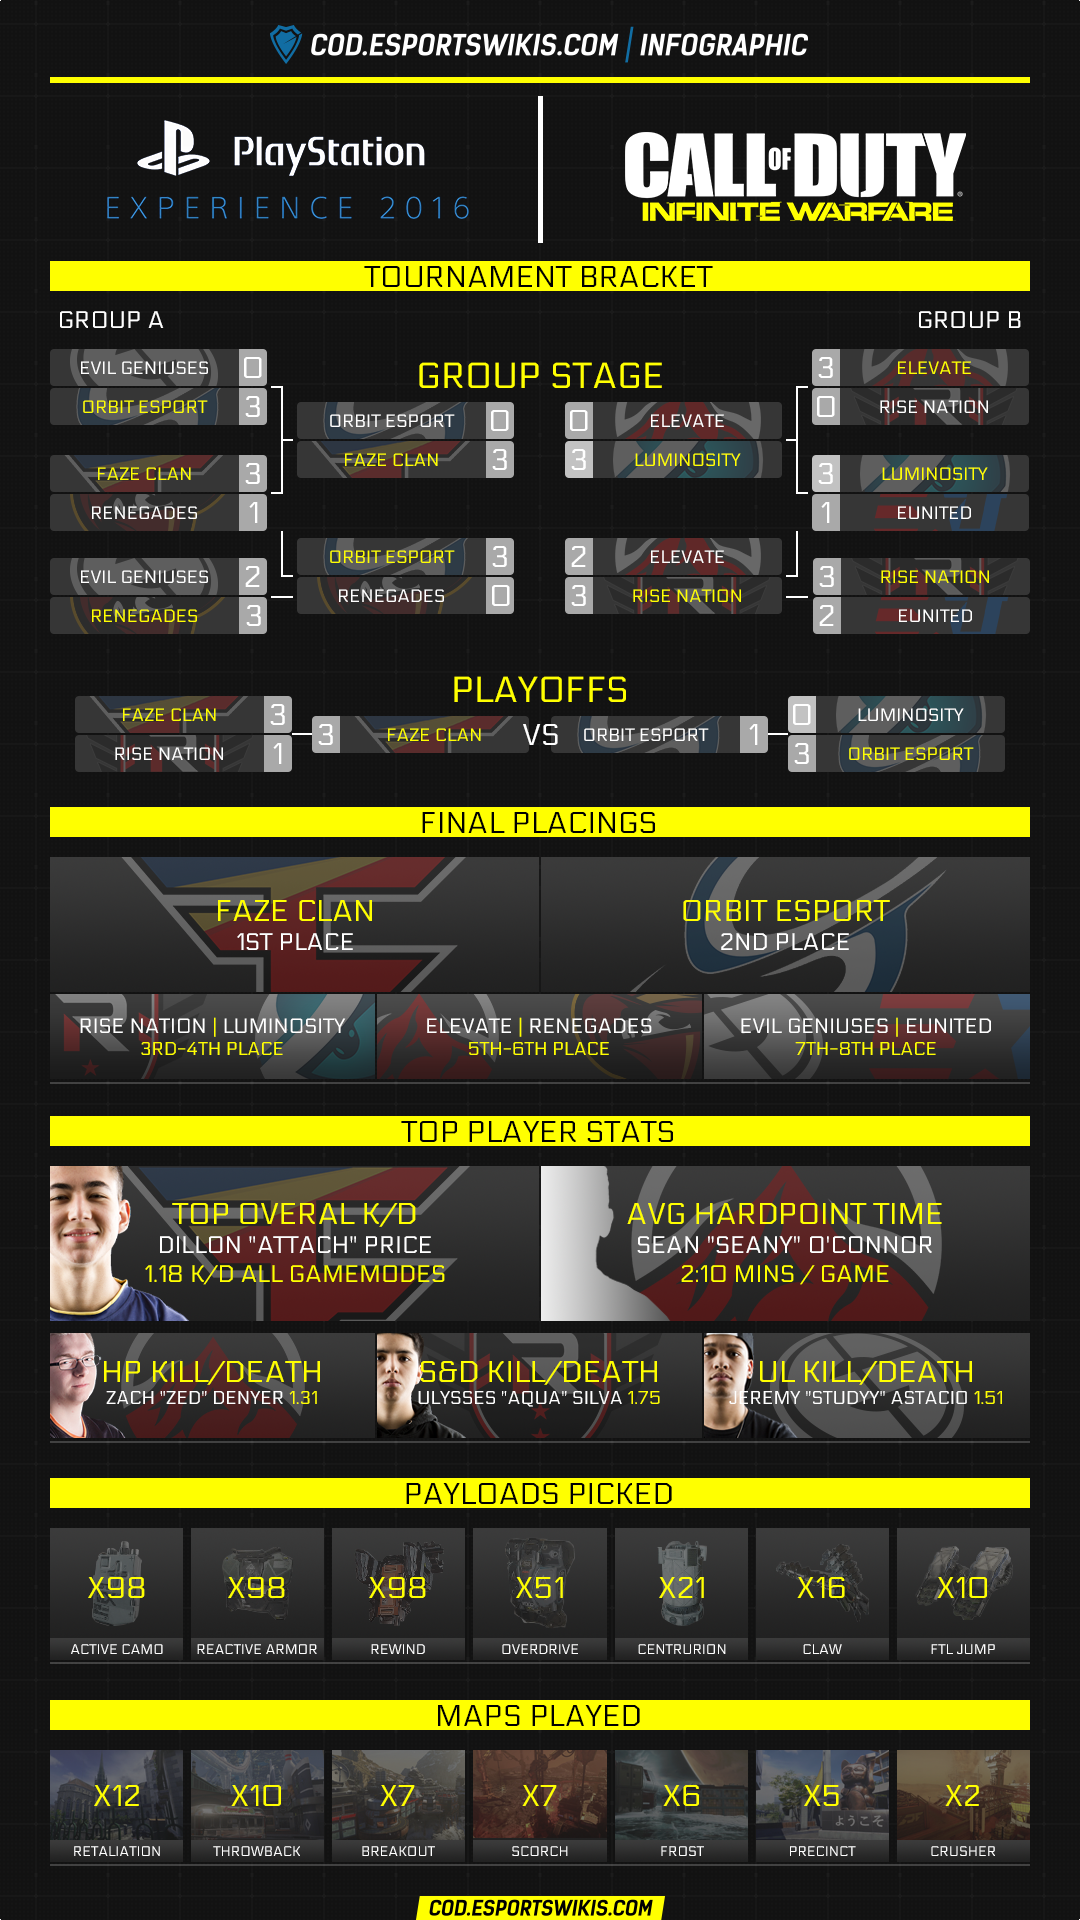 PSX 2016 Infographic2.png